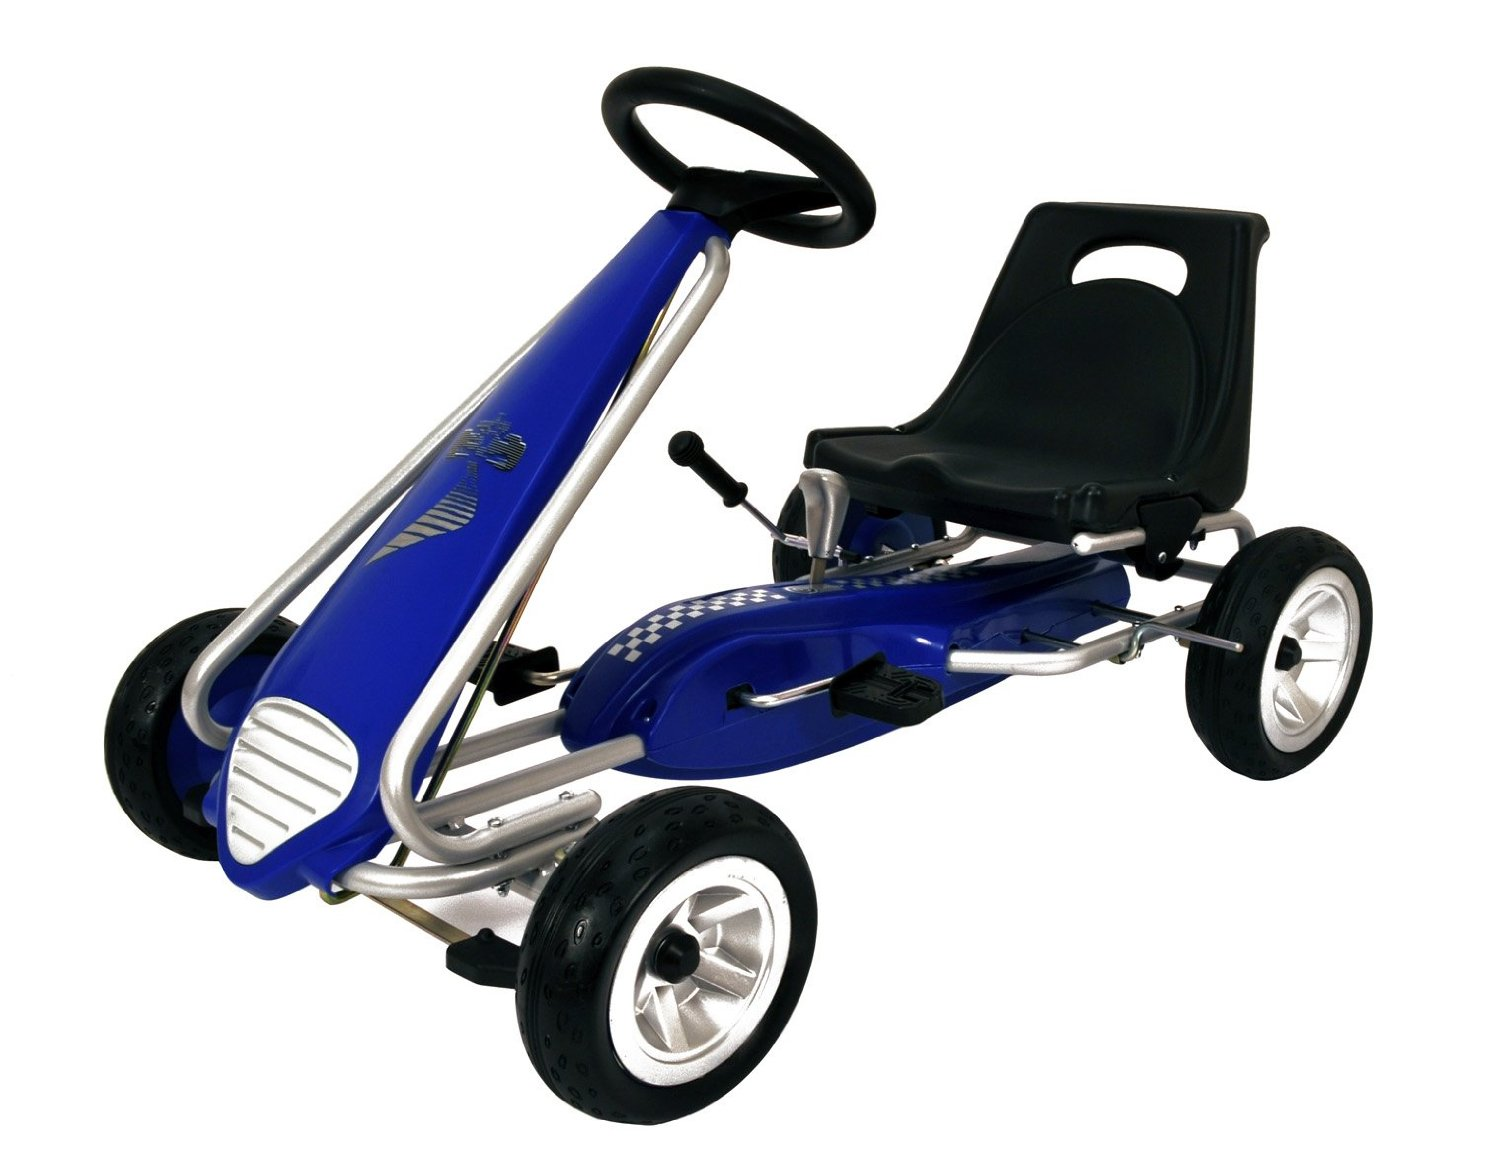 Kettler Kiddi-O Pole Position Pedal Car